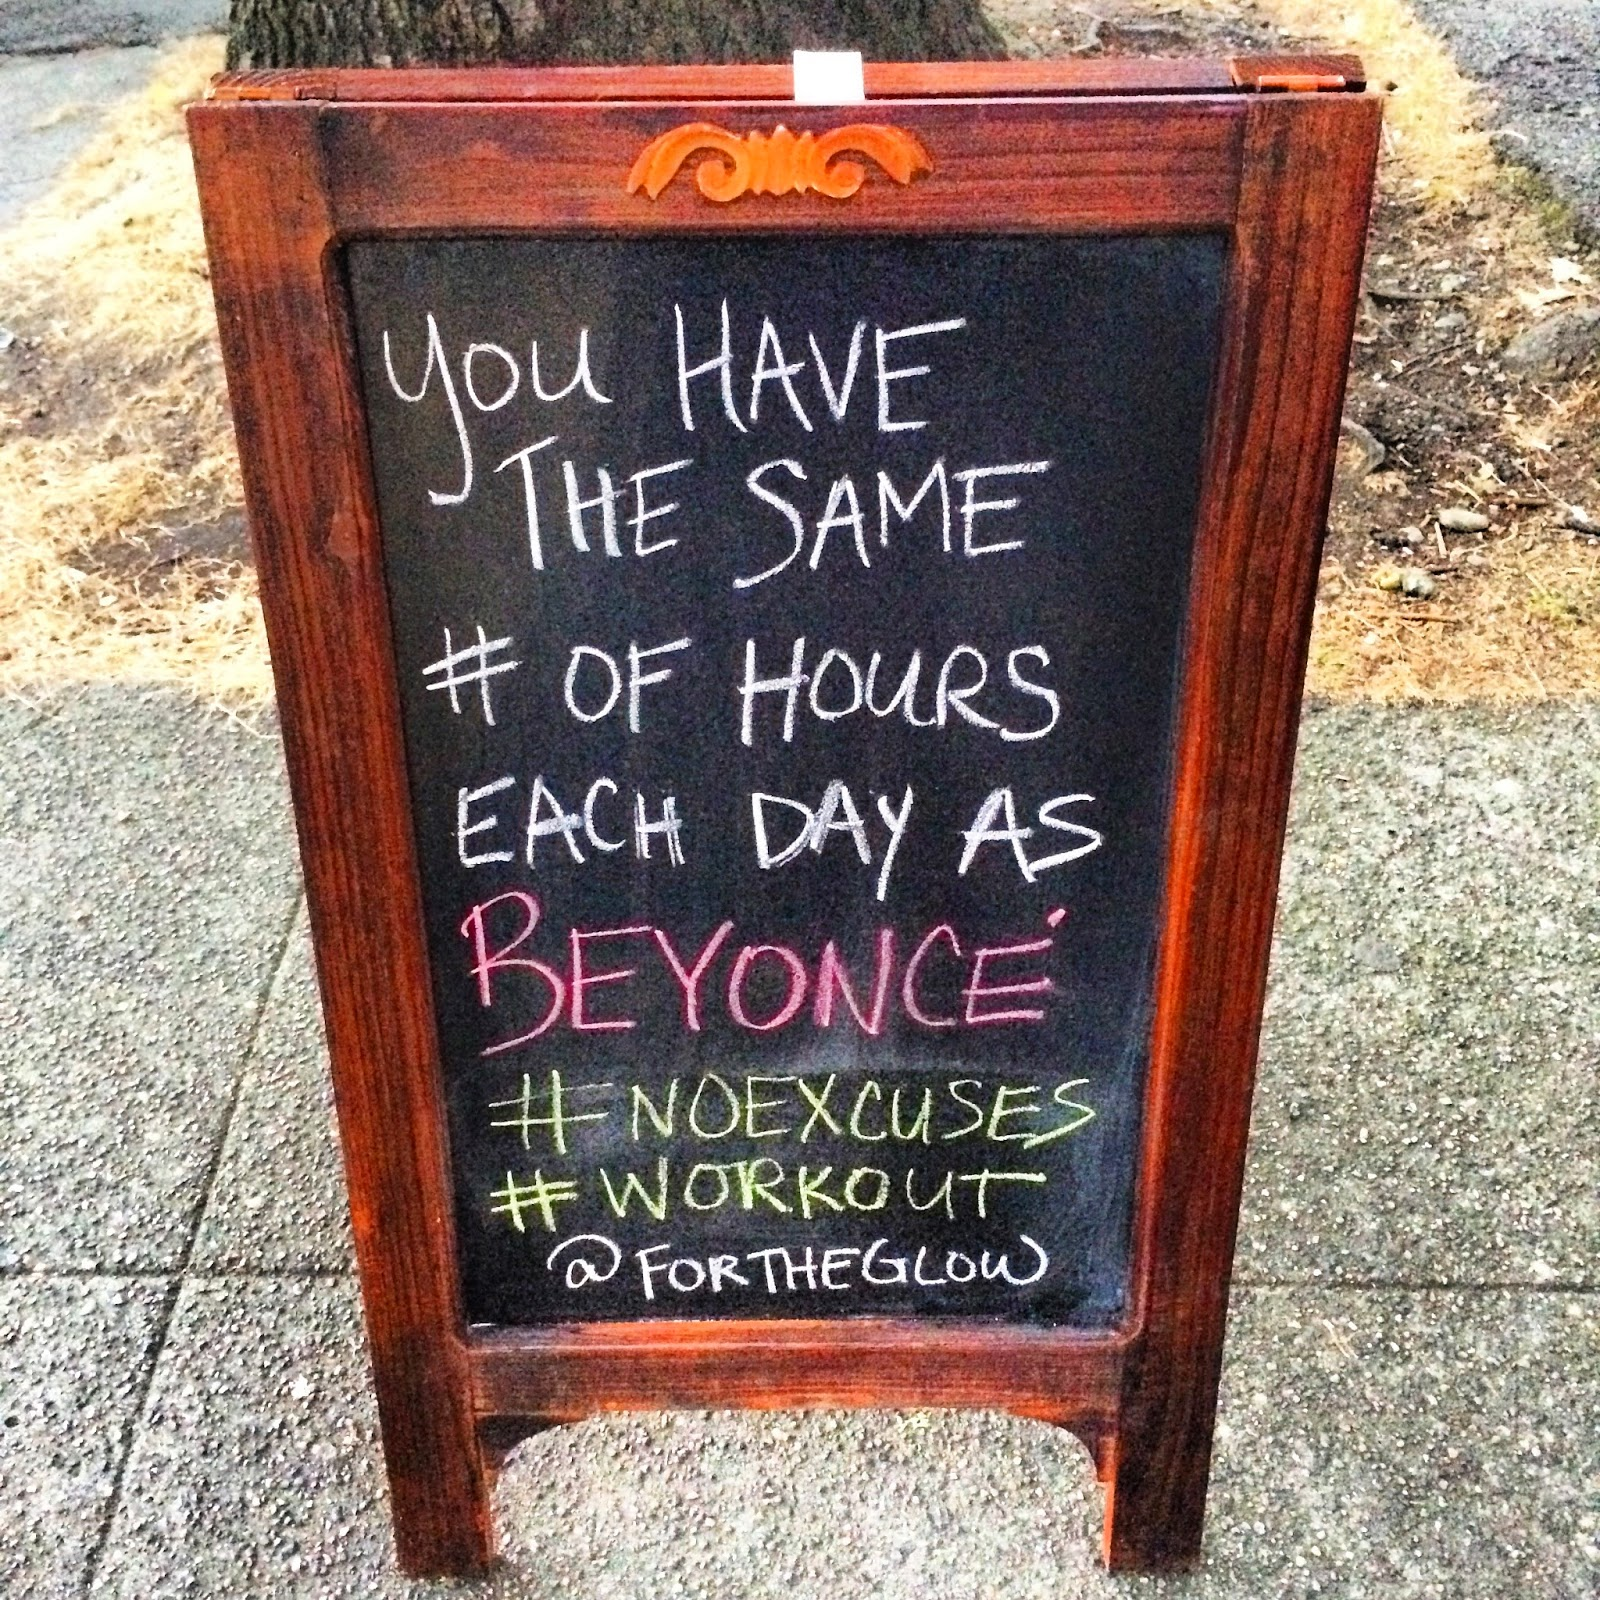 Beyonce+quote.JPG